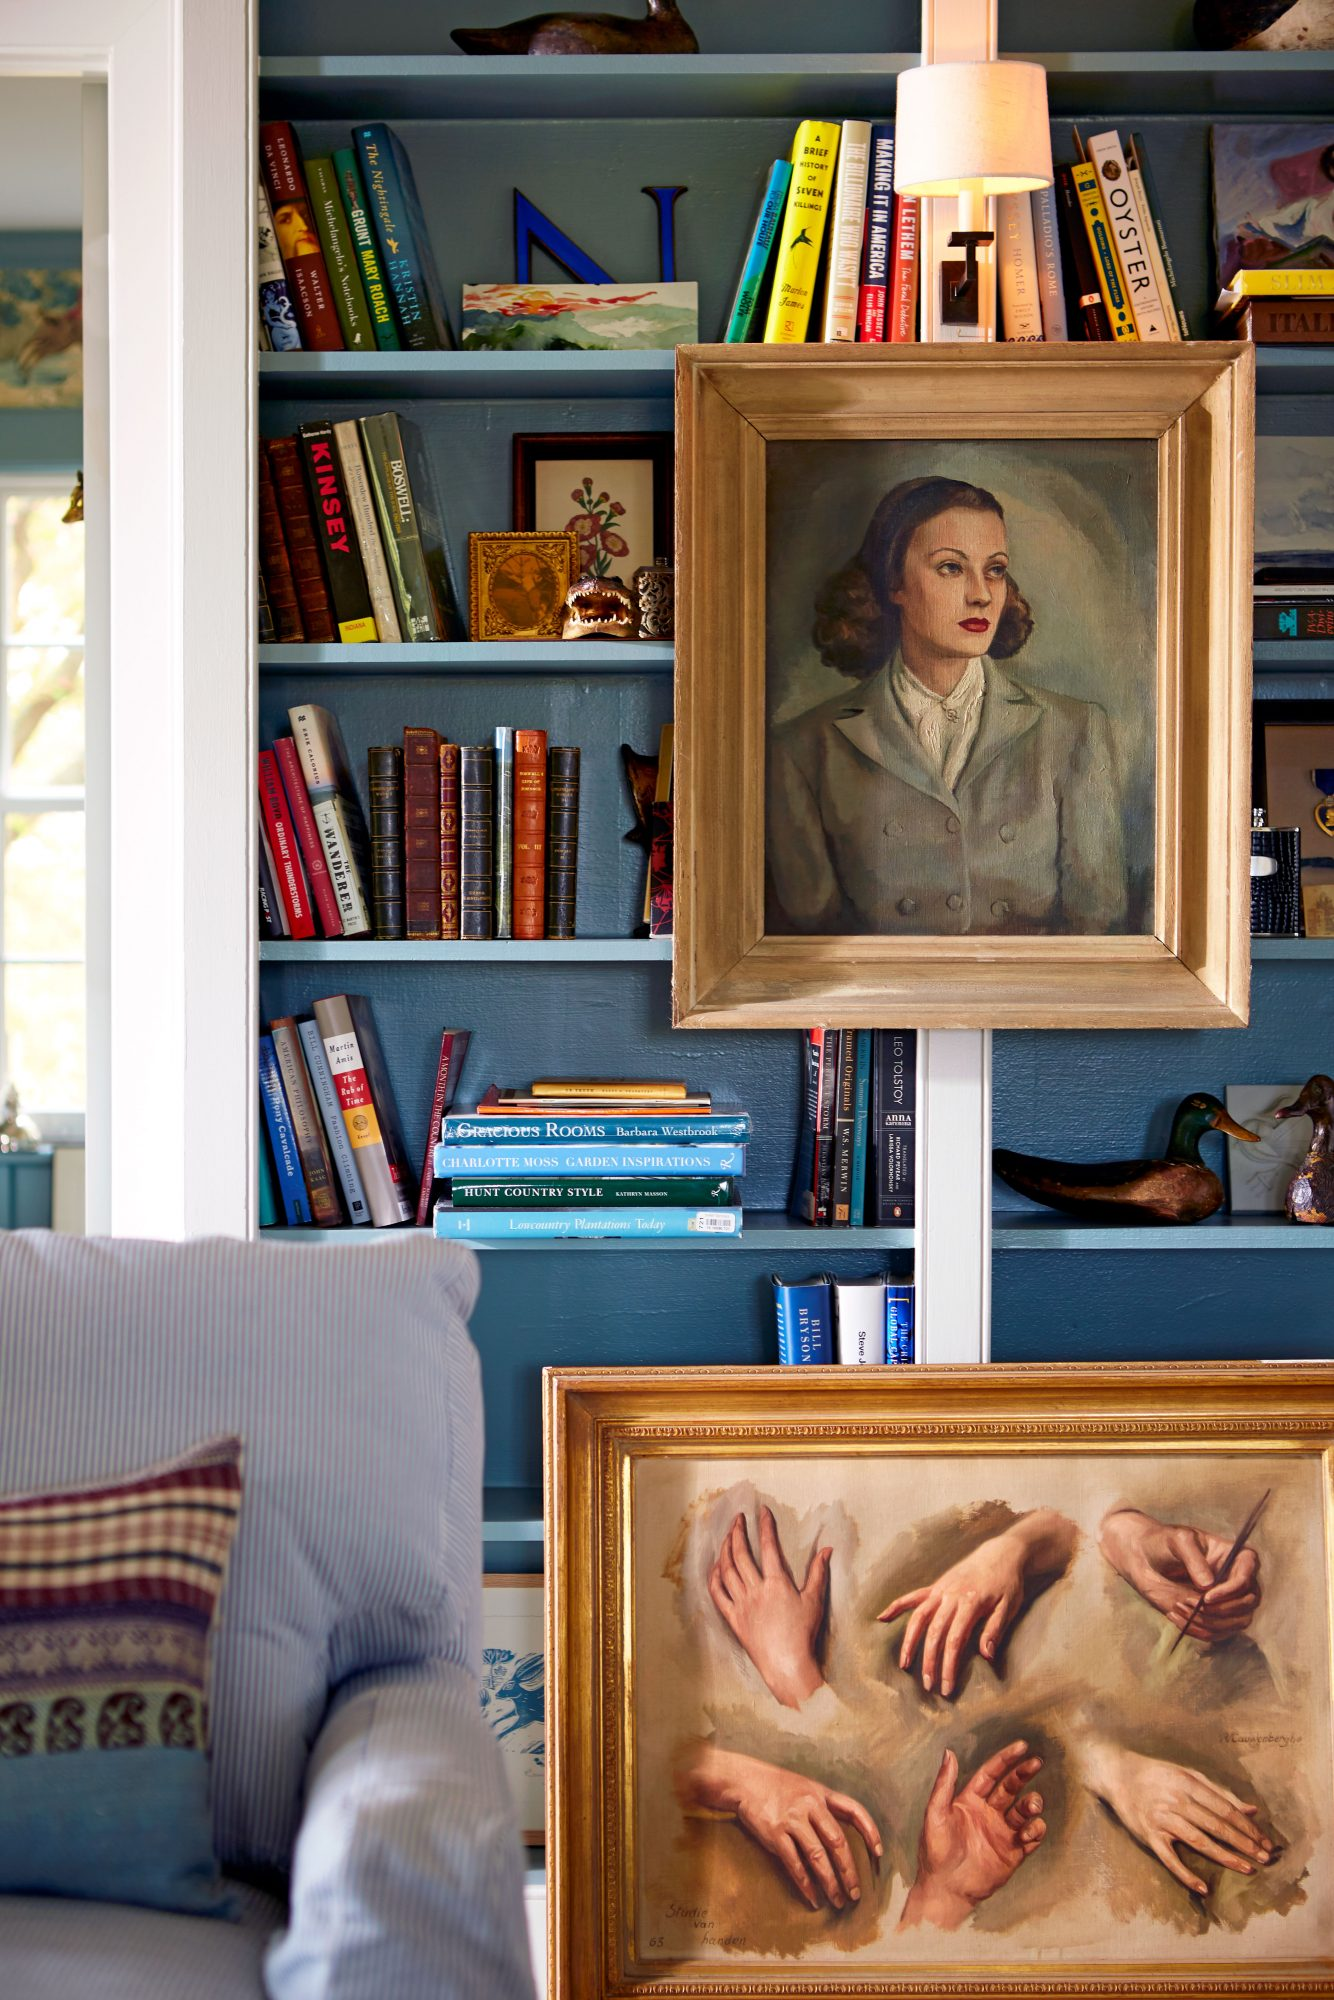 Madison Spencer Virginia Cottage Living Room Bookshelves with Painting of his Mother